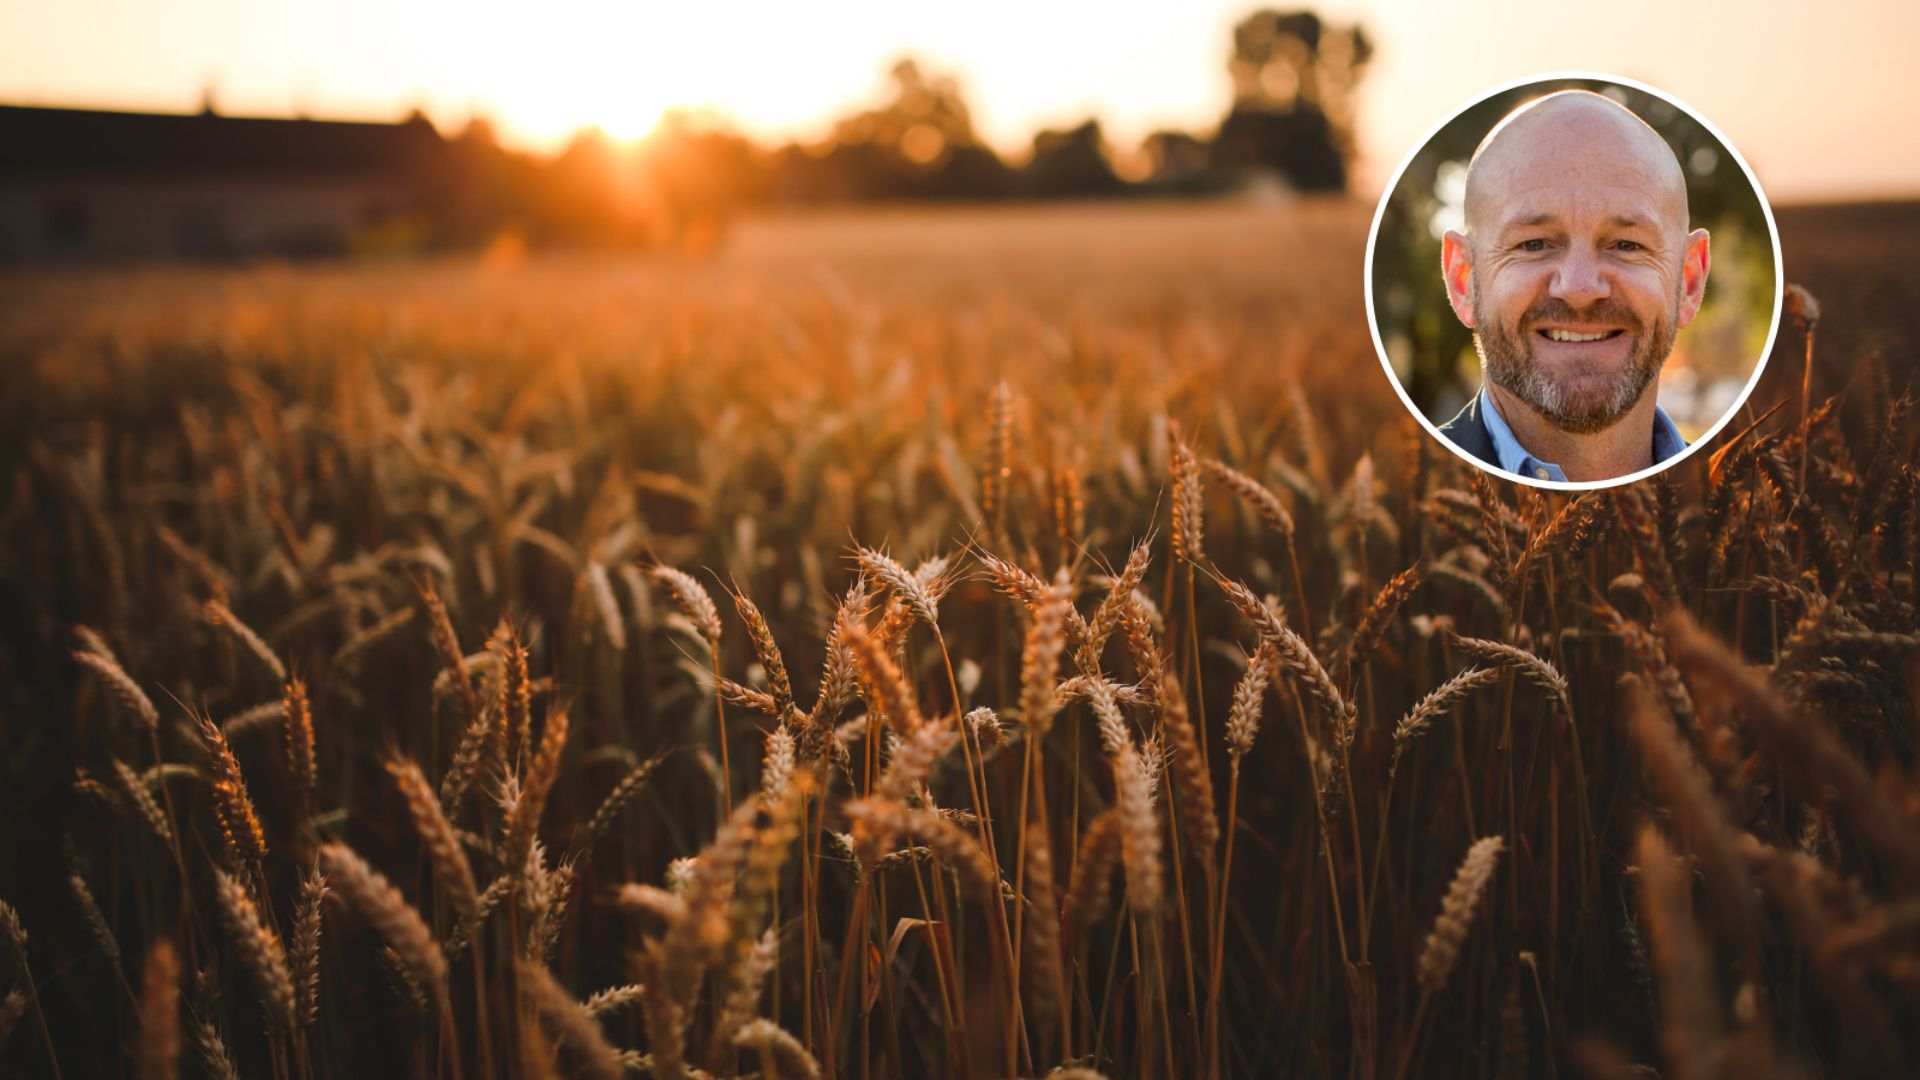 Australian farmers are on the ball and ready for 'nothing but net' approach